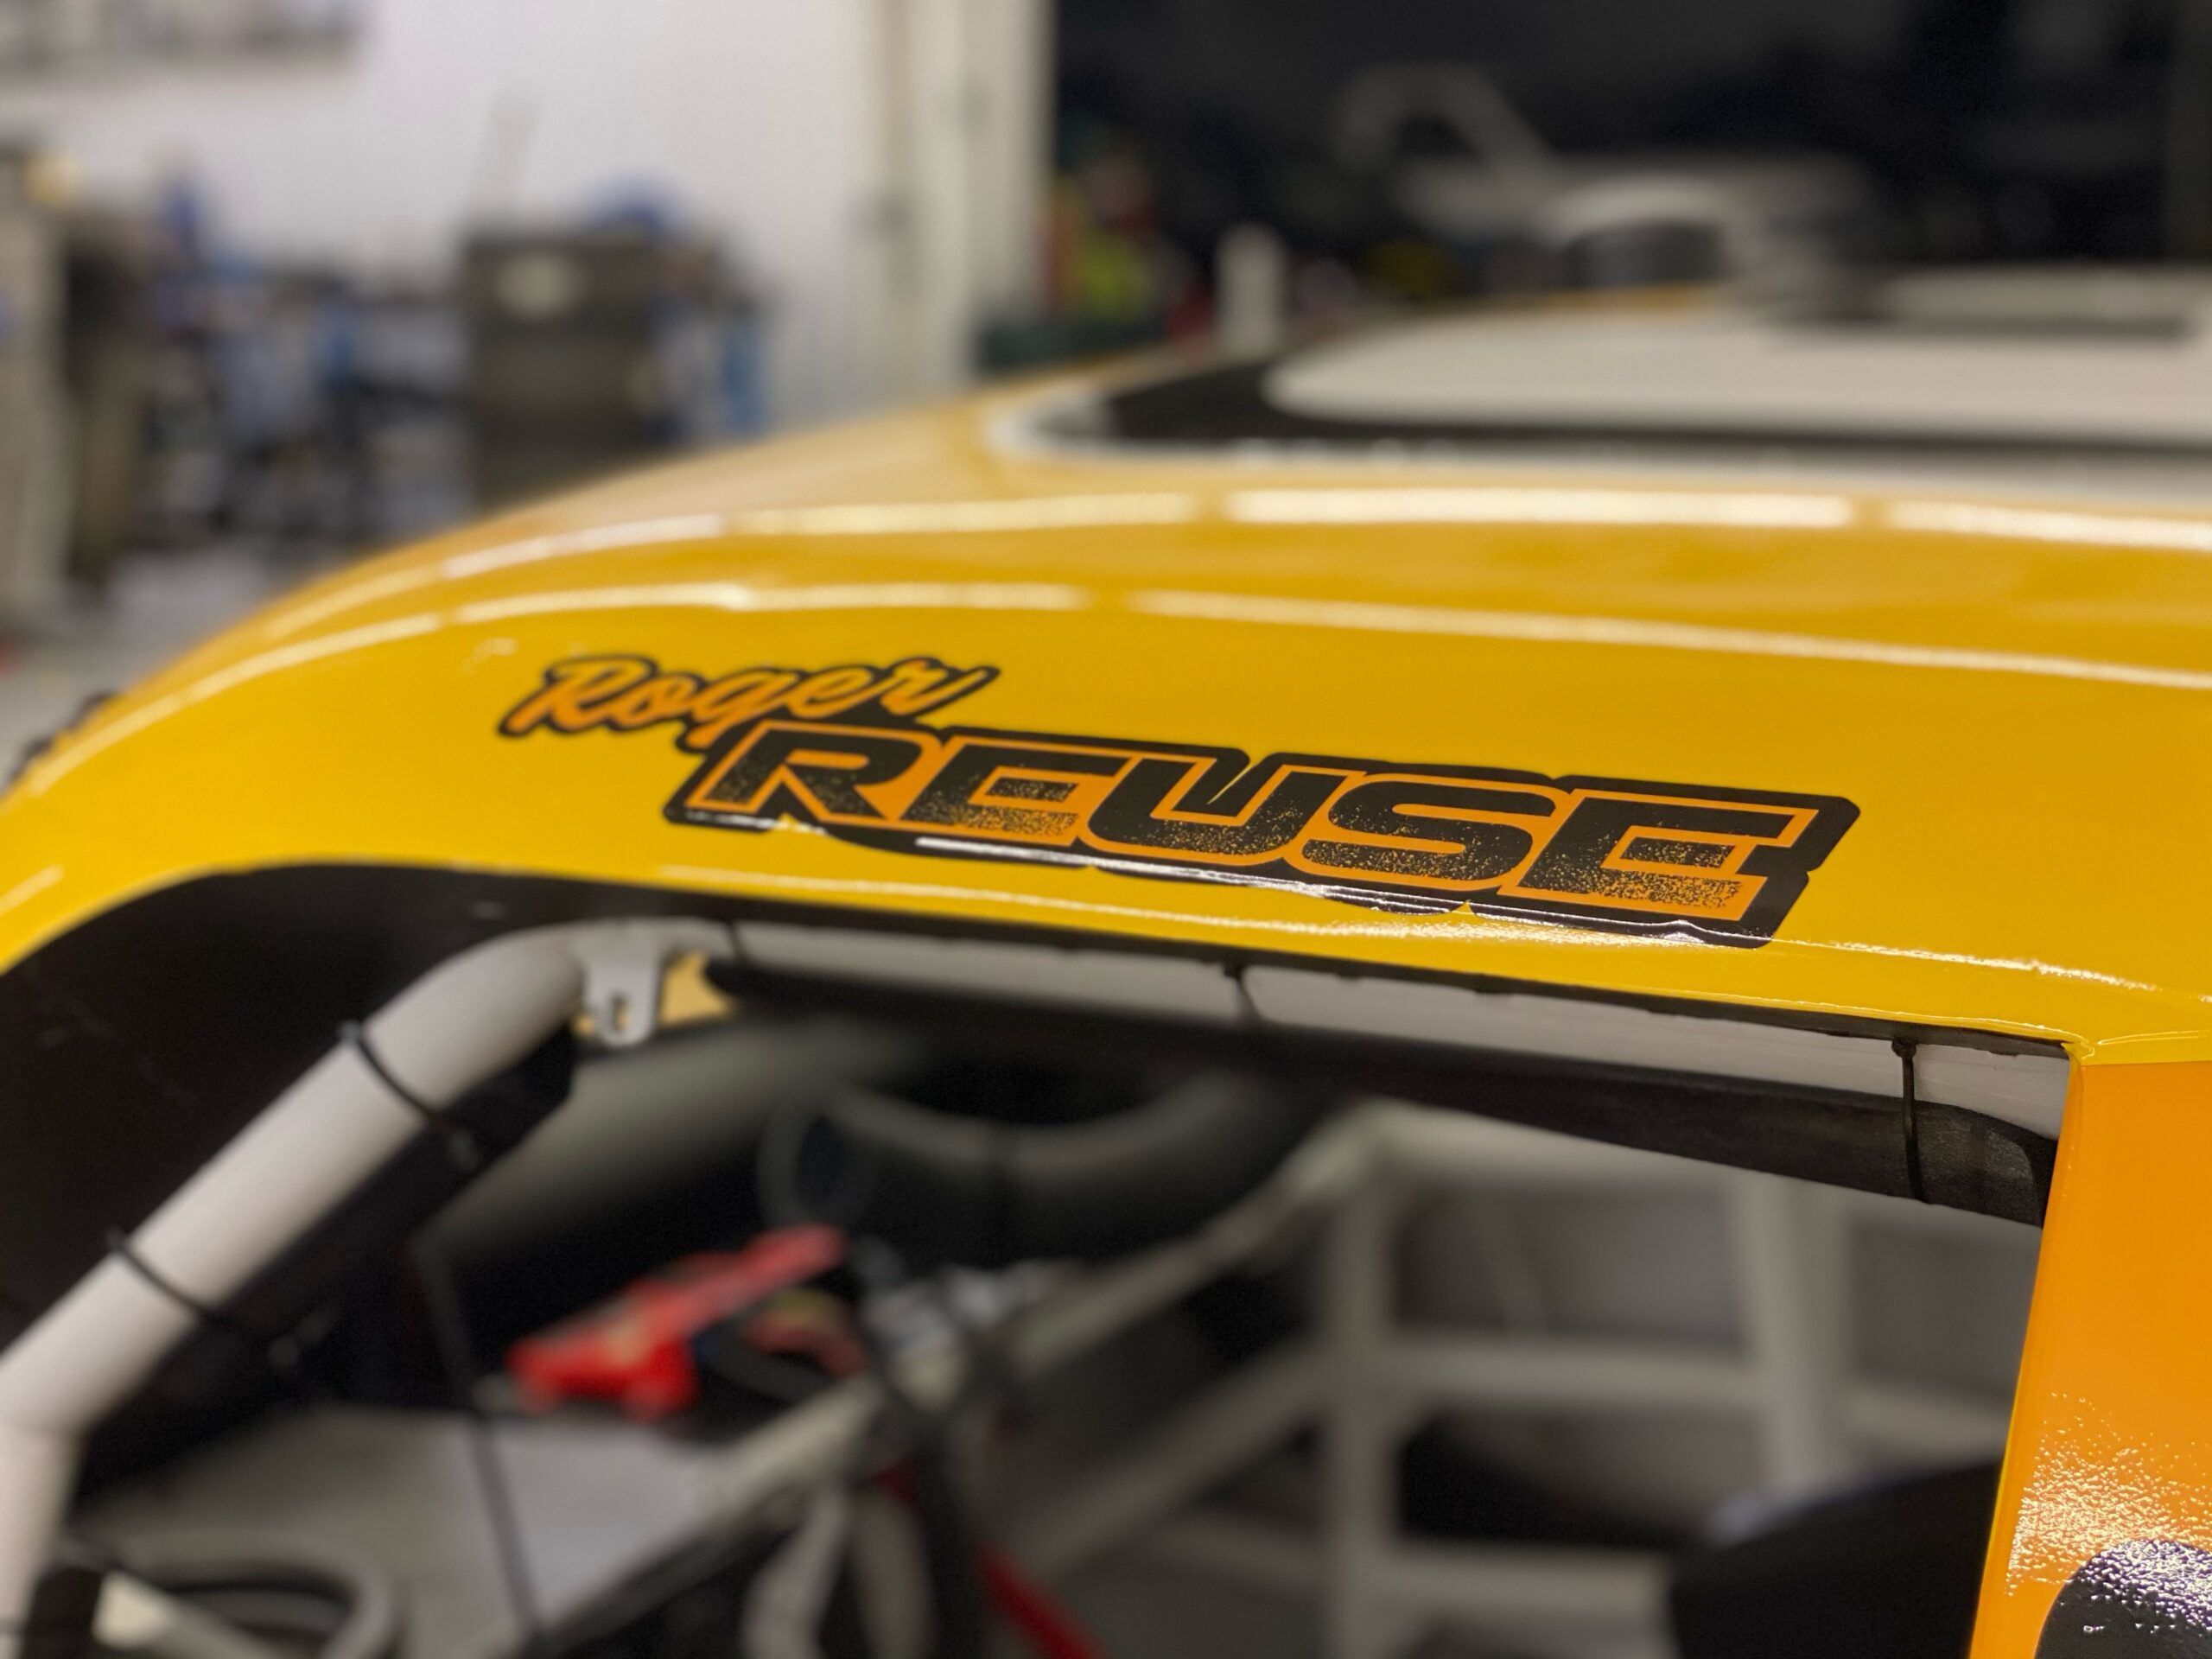 Roger Reuse to Race for Jordan Anderson Racing at Circuit of the Americas